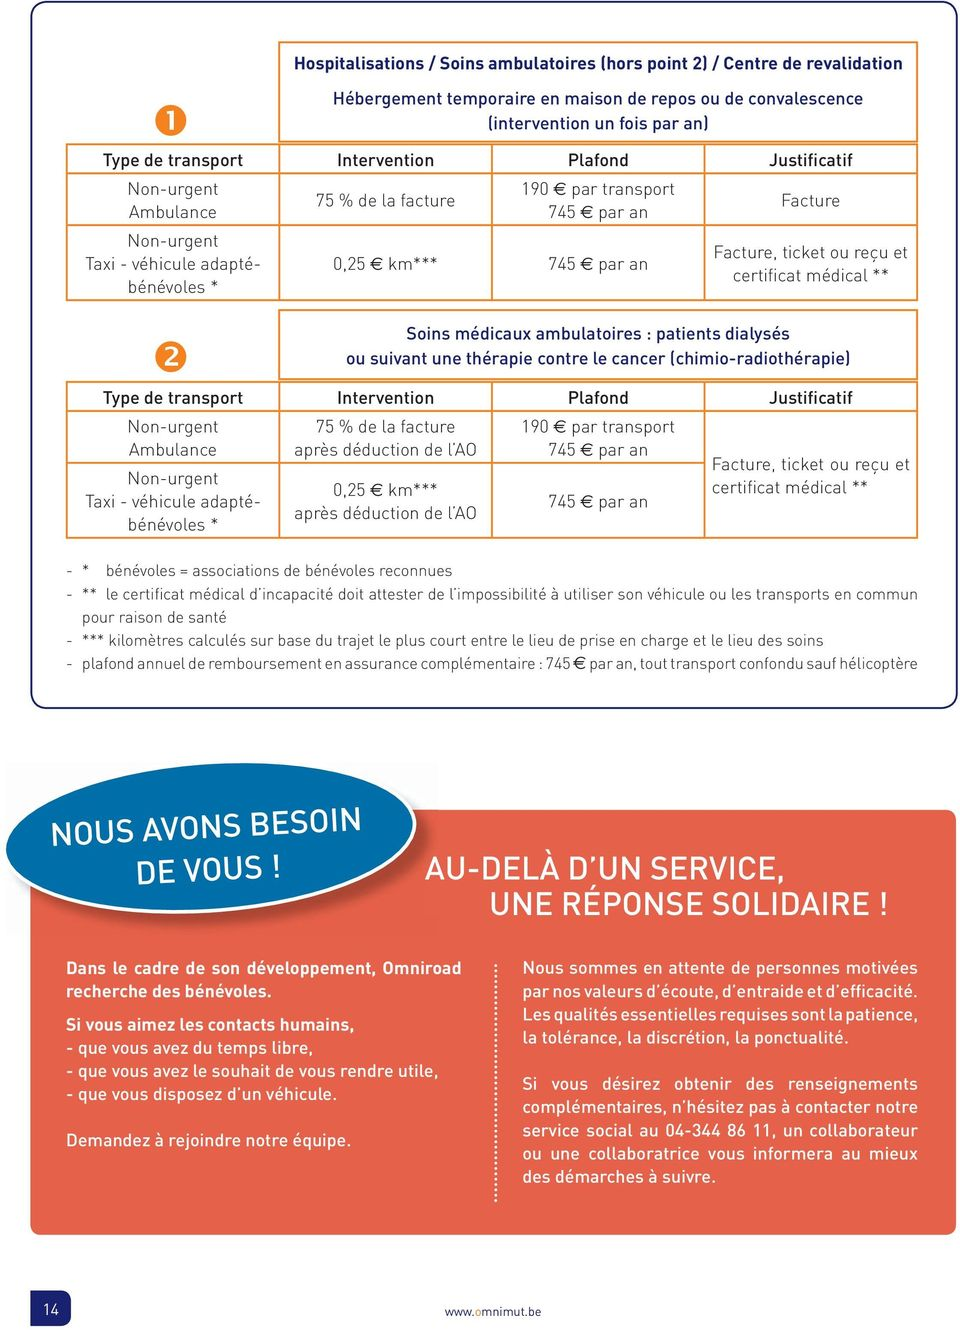 ambulatoires (hors point 2) / Centre de revalidation Hébergement temporaire en maison de repos ou de convalescence (intervention un fois par an) Soins médicaux ambulatoires : patients dialysés ou